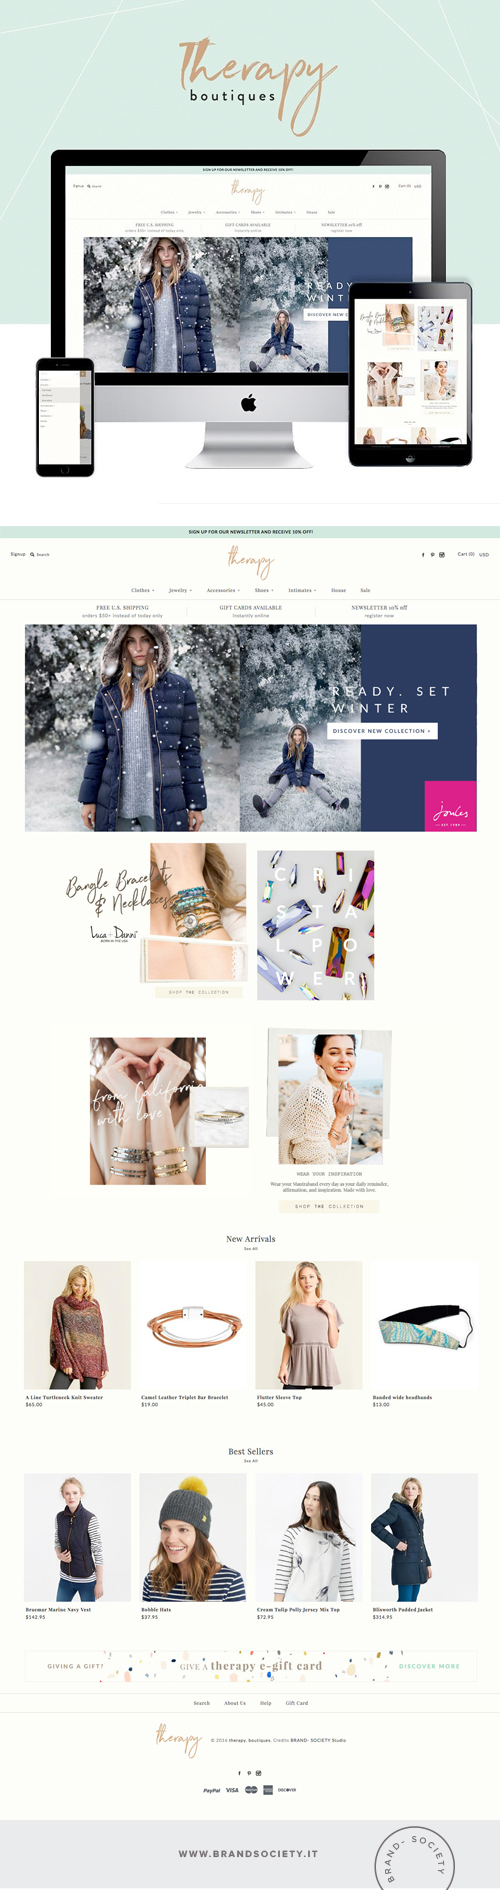 THERAPY BOUTIQUE    SERVICES  || SHOPIFY WEBSITE | ECOMMERCE | BRANDING | COLOR PALETTE